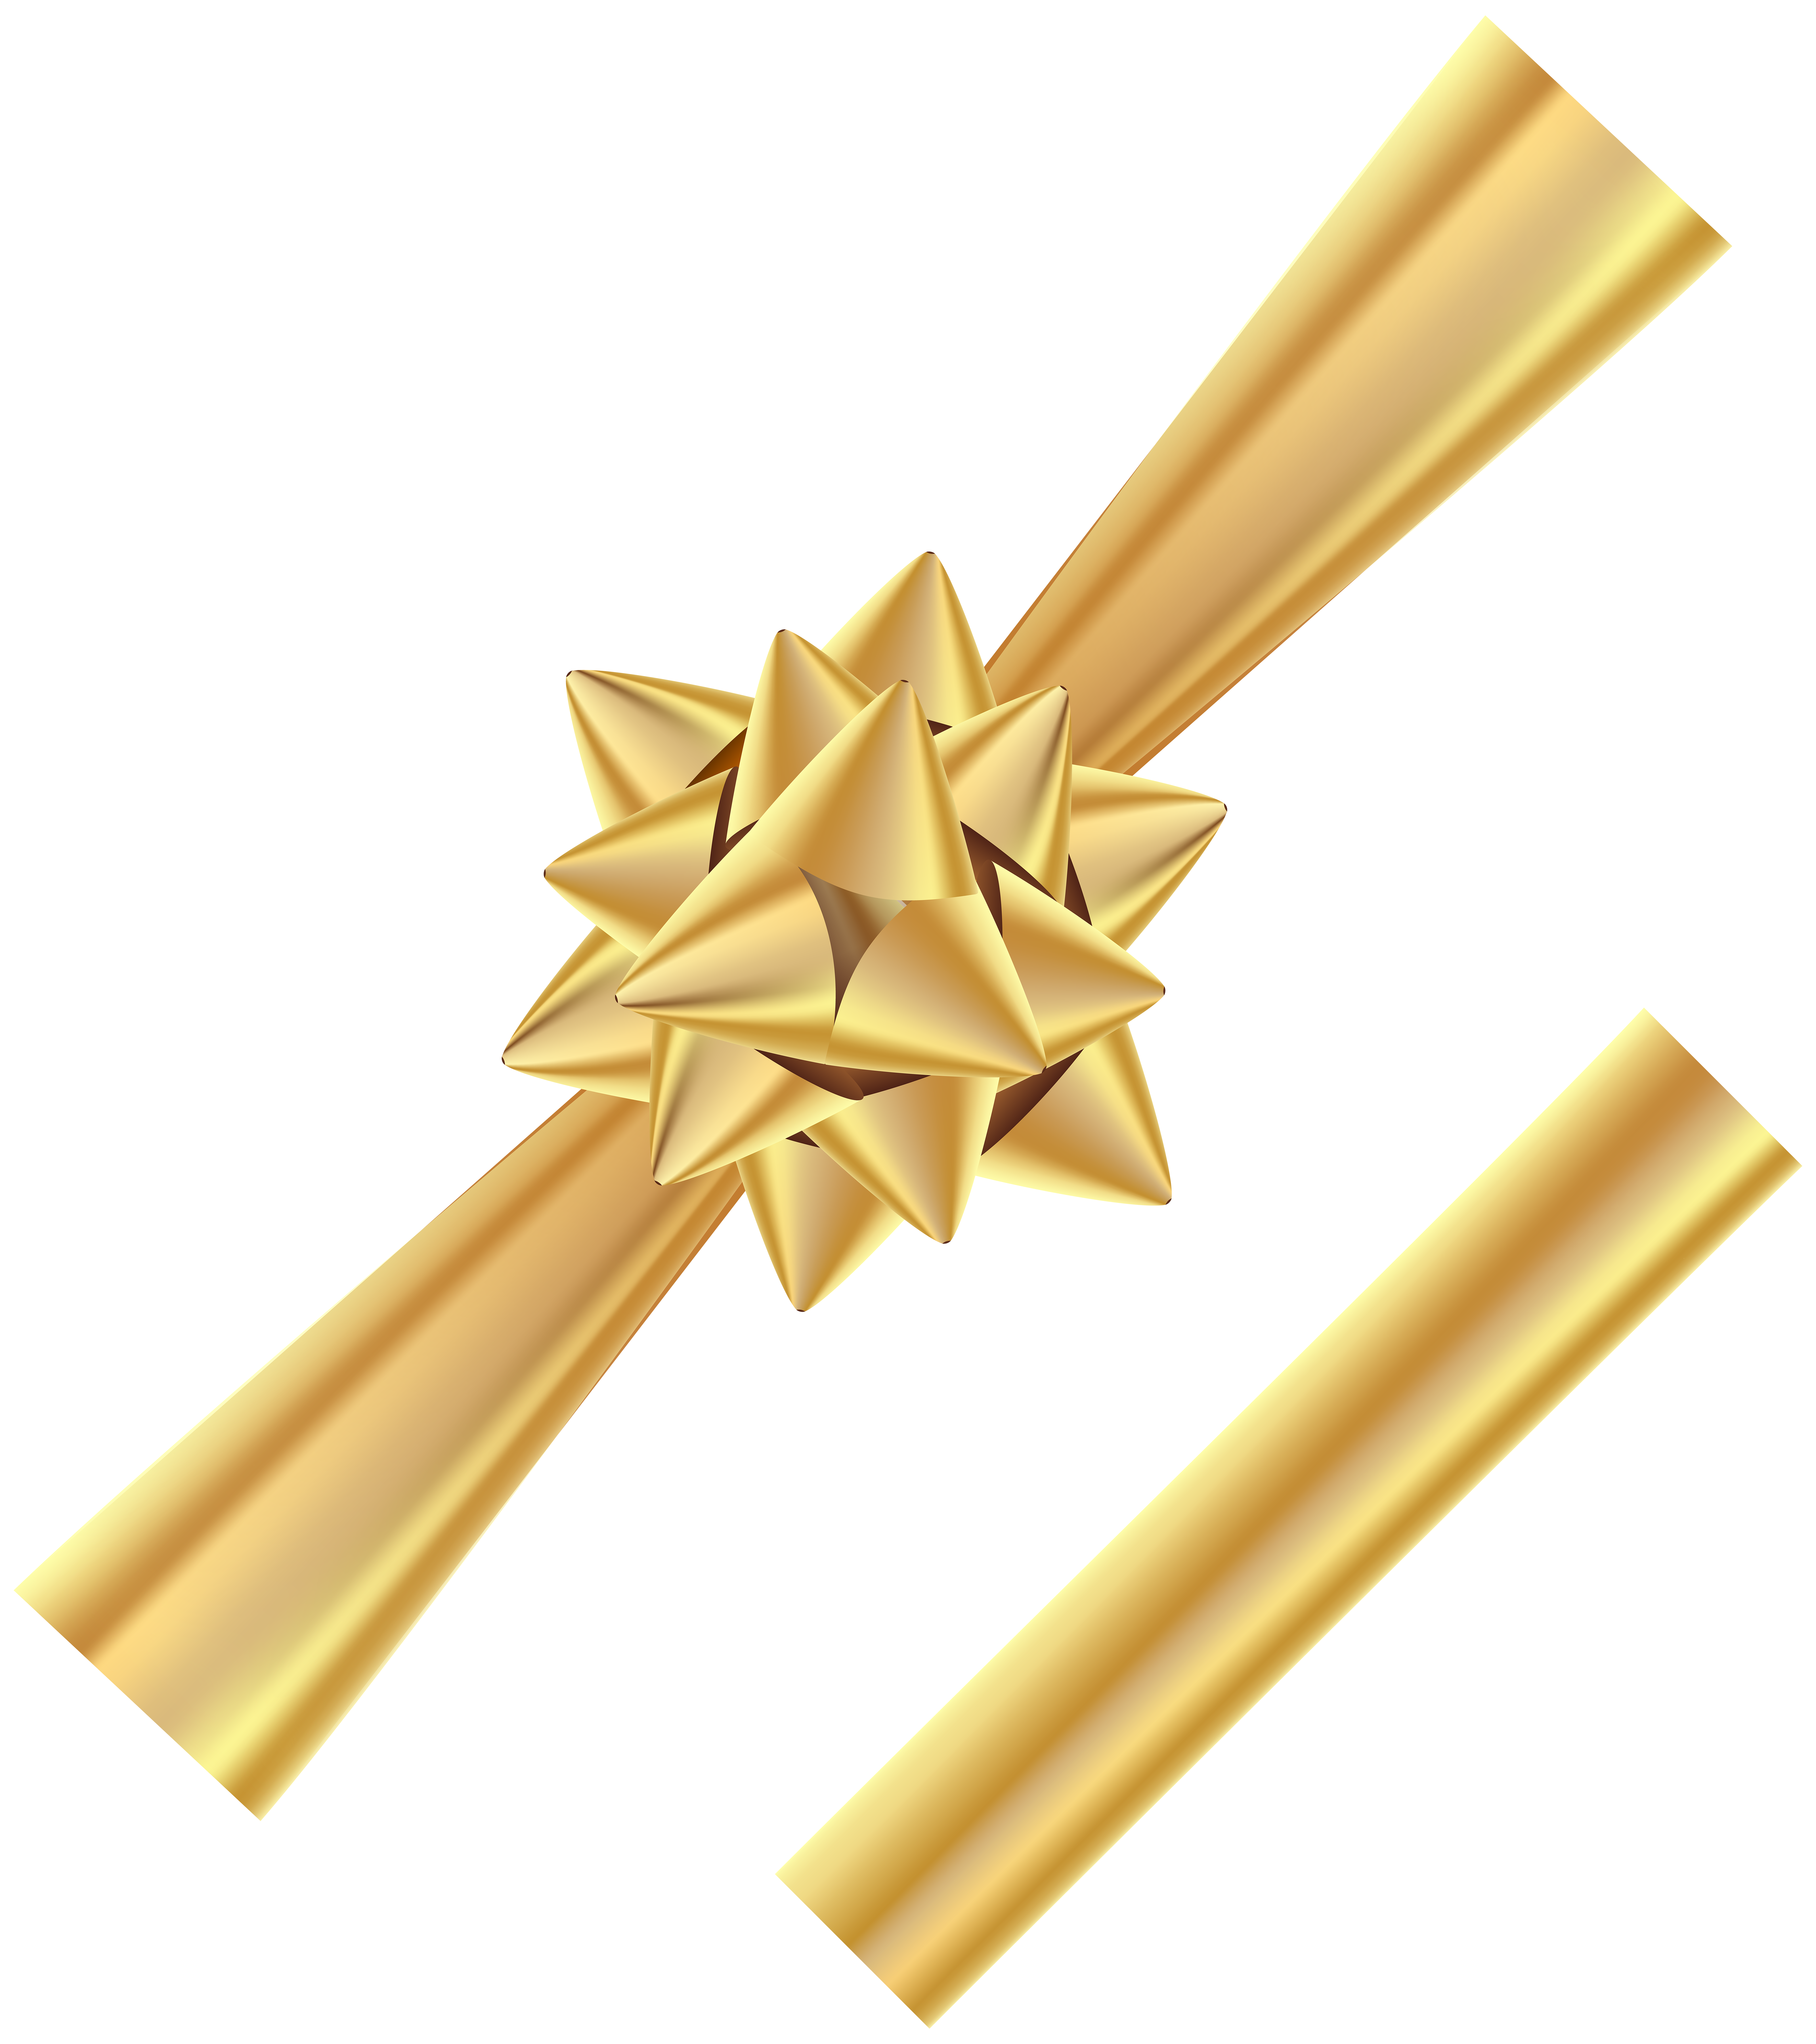 Clipart bow corner. And ribbon gold transparent